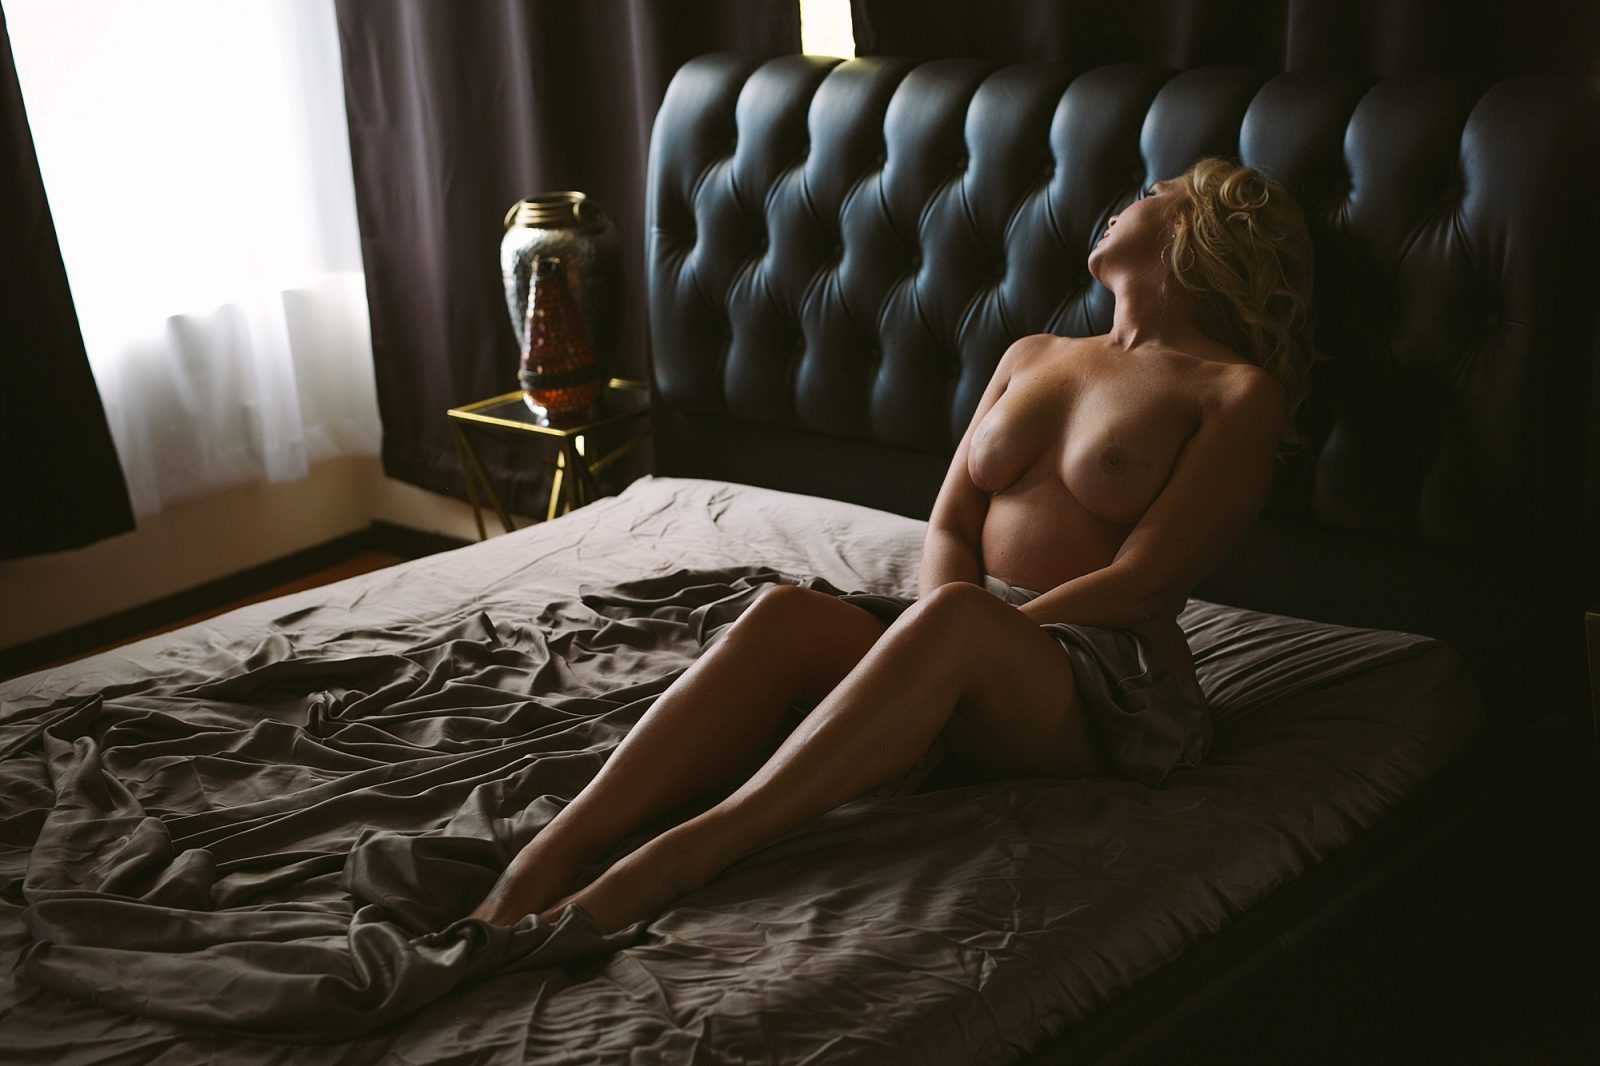 san francisco bay area boudoir sensual photography